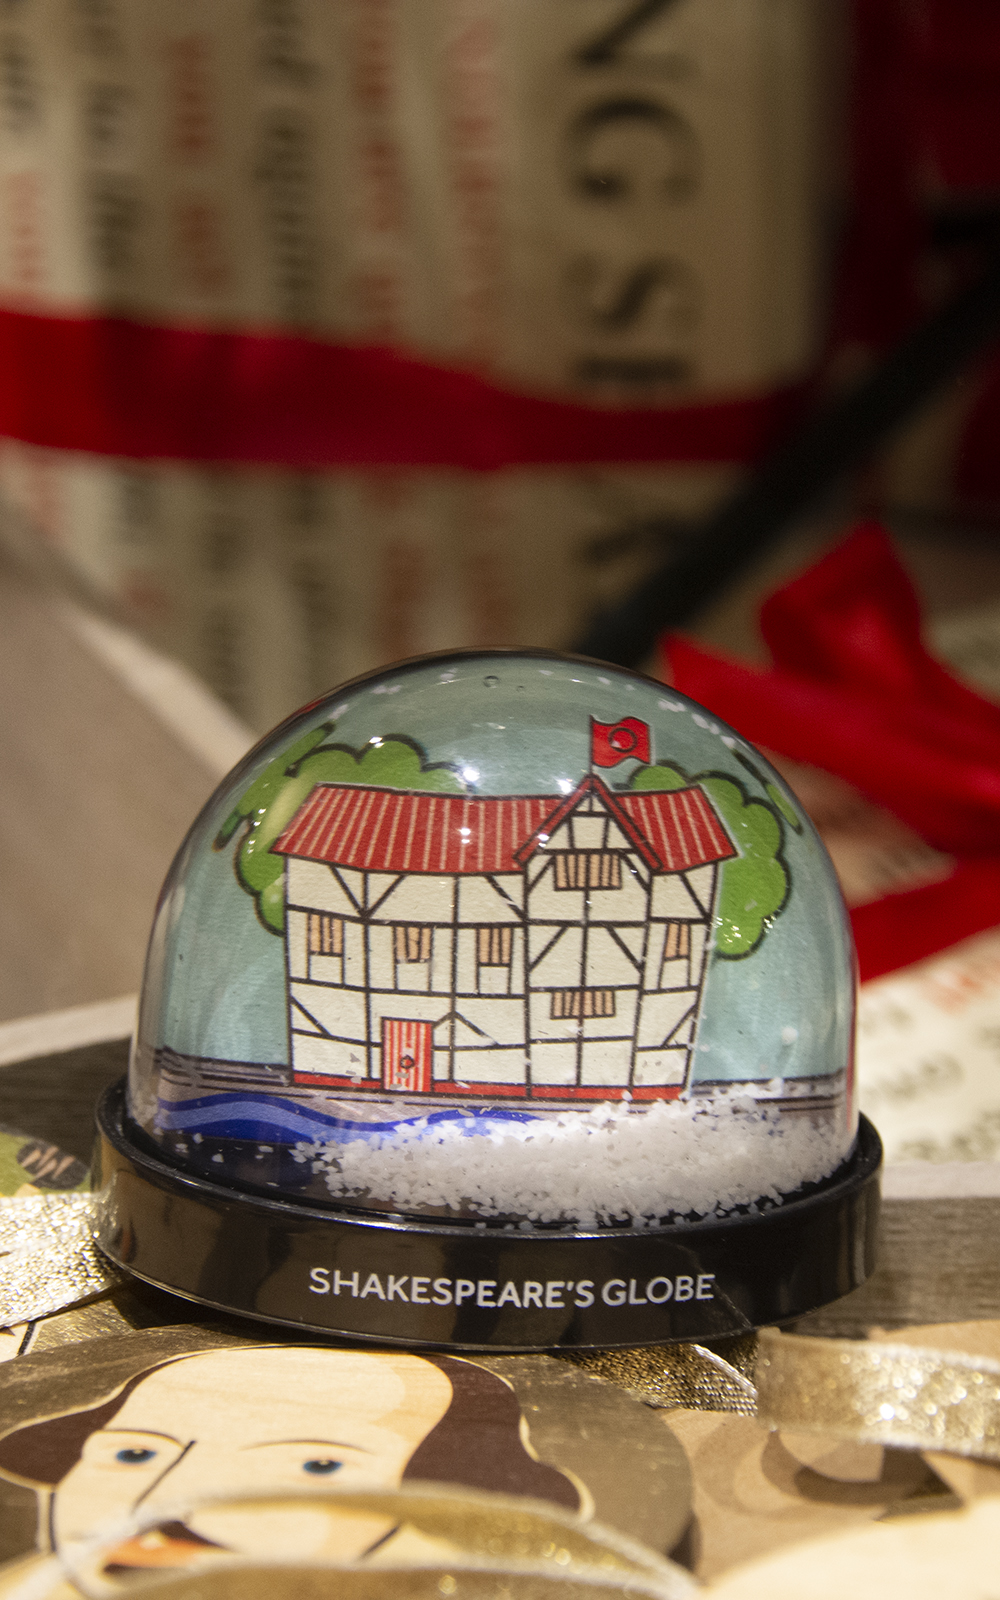 A snowglobe with a cartoon of a round wooden theatre as its background